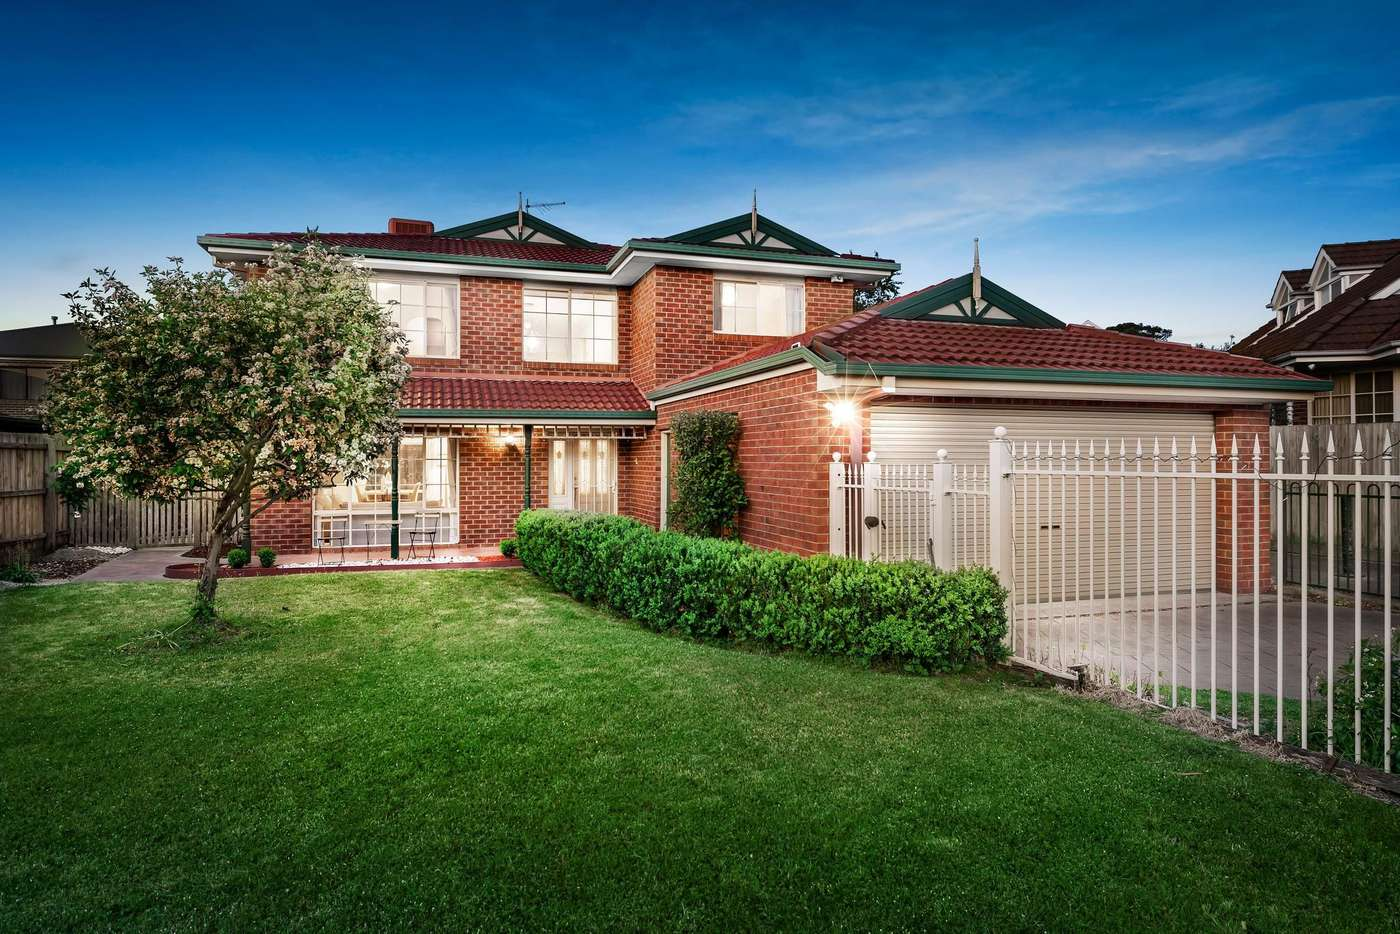 Main view of Homely house listing, 5 Wattlebird Court, Burwood, VIC 3125